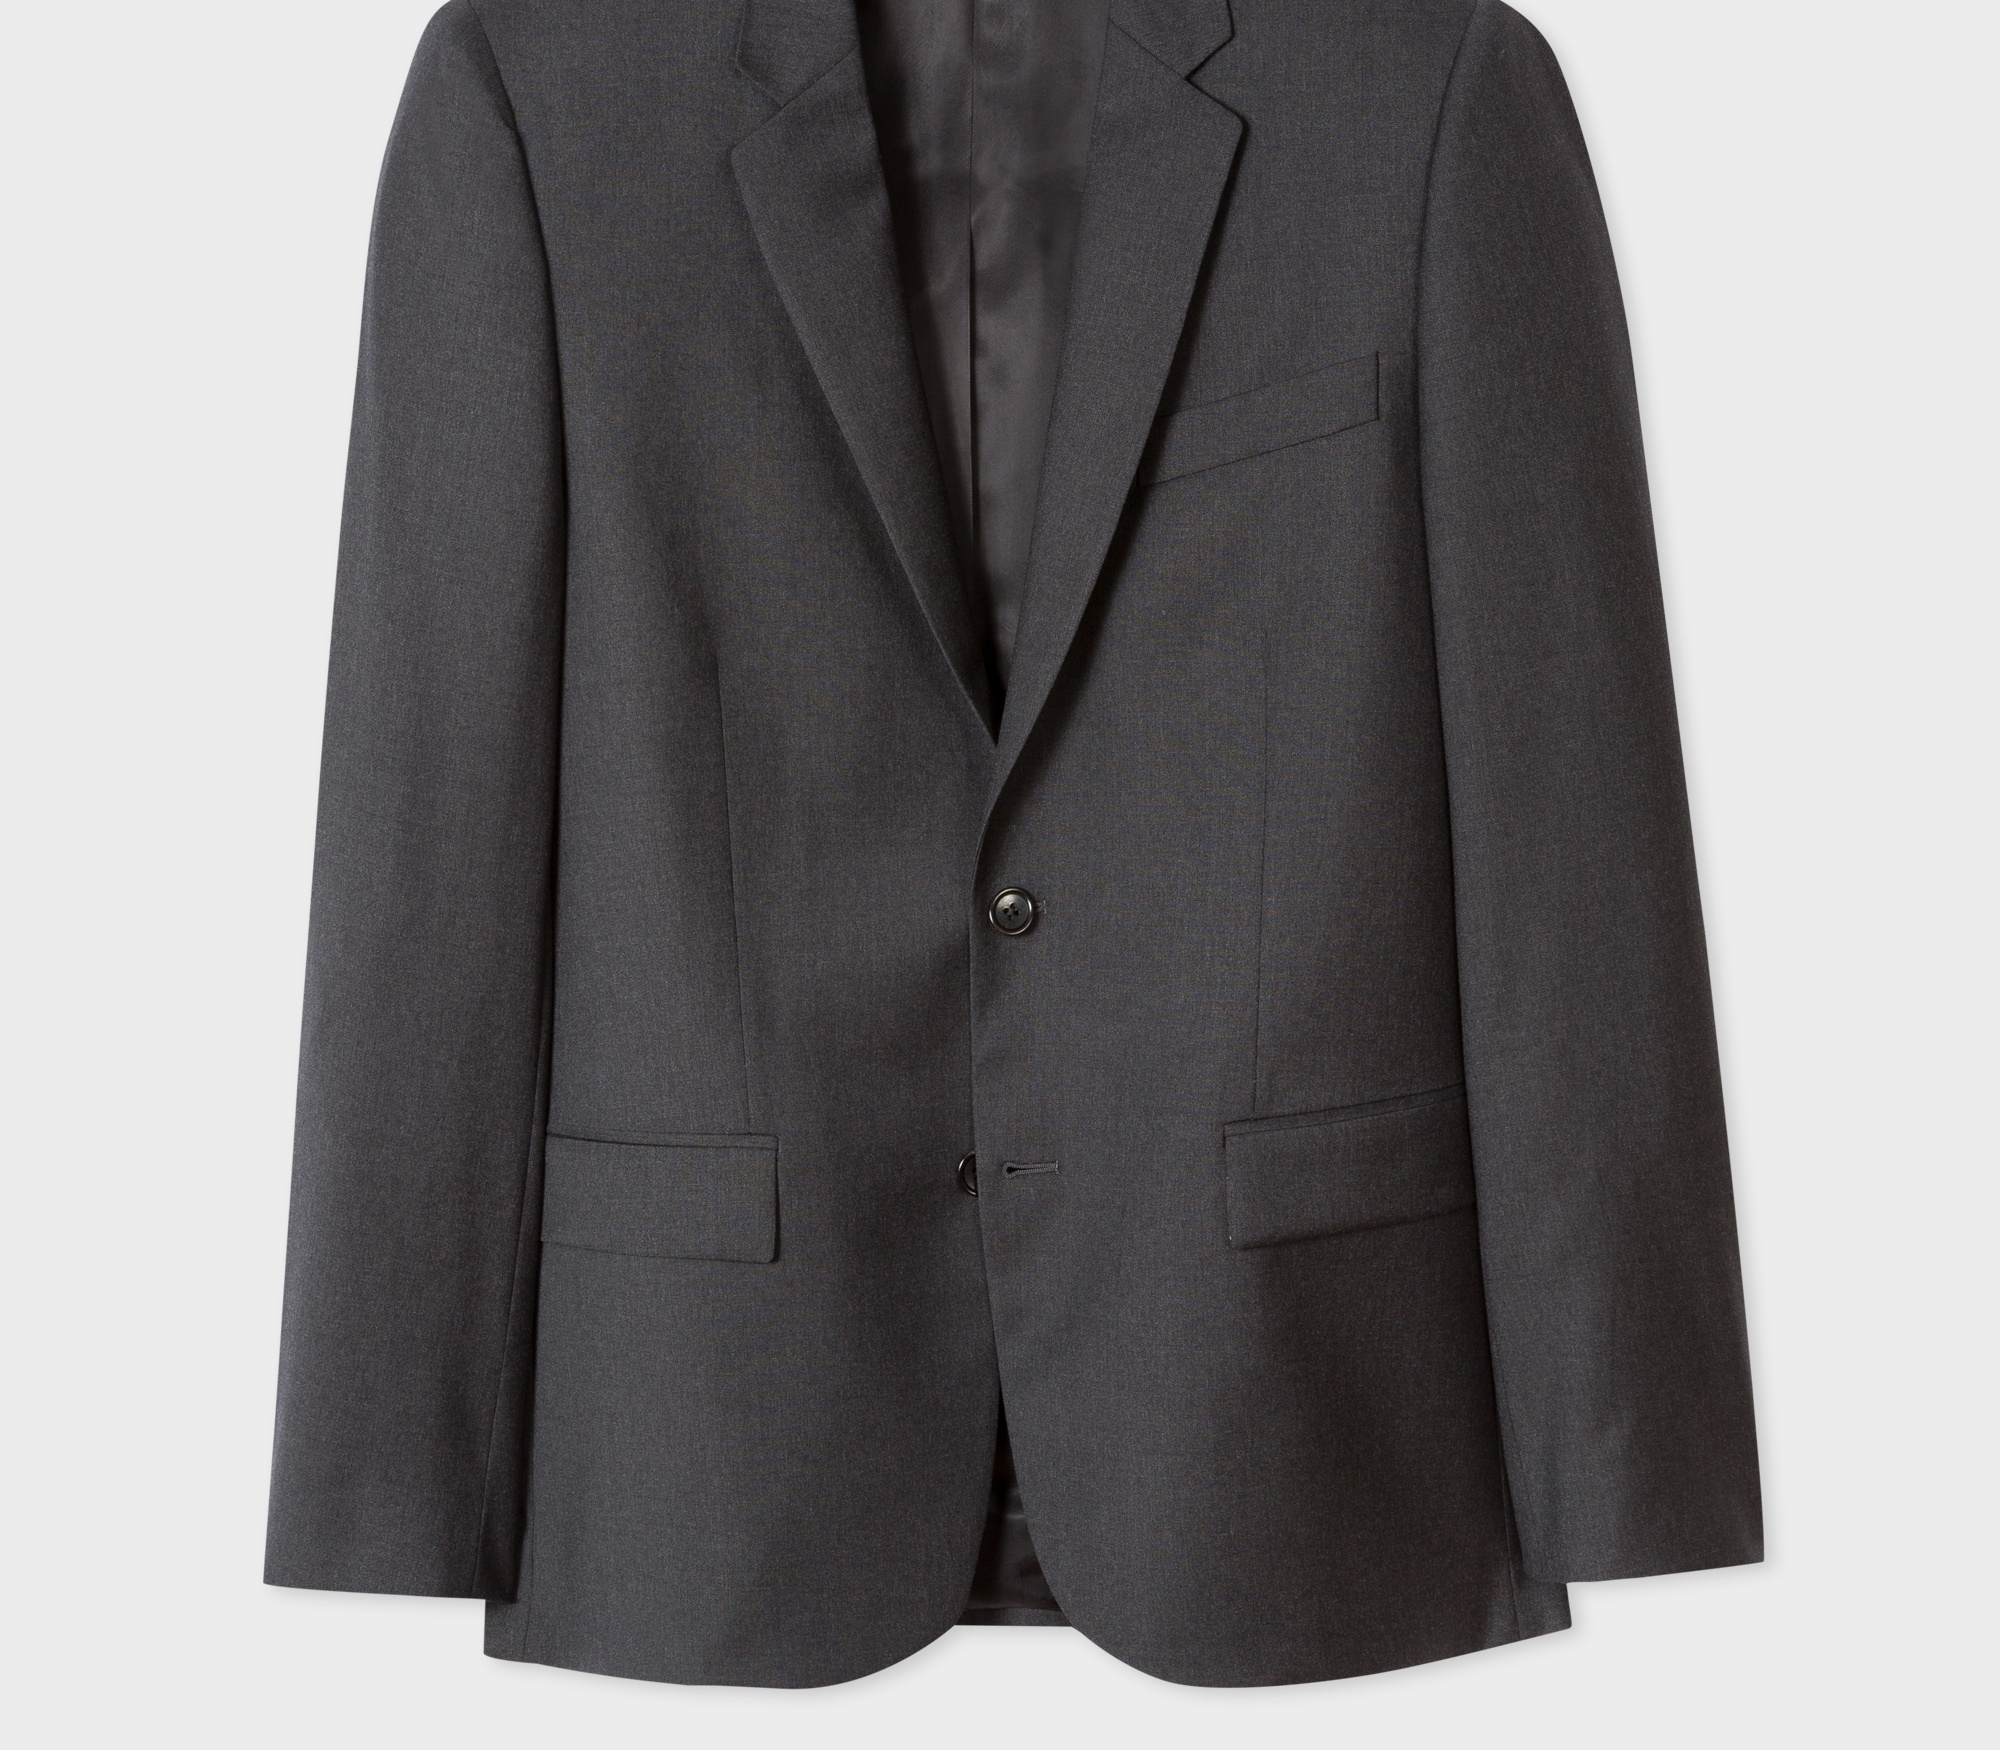 Paul Smith Men's Mid-Fit Charcoal Grey Wool Blazer